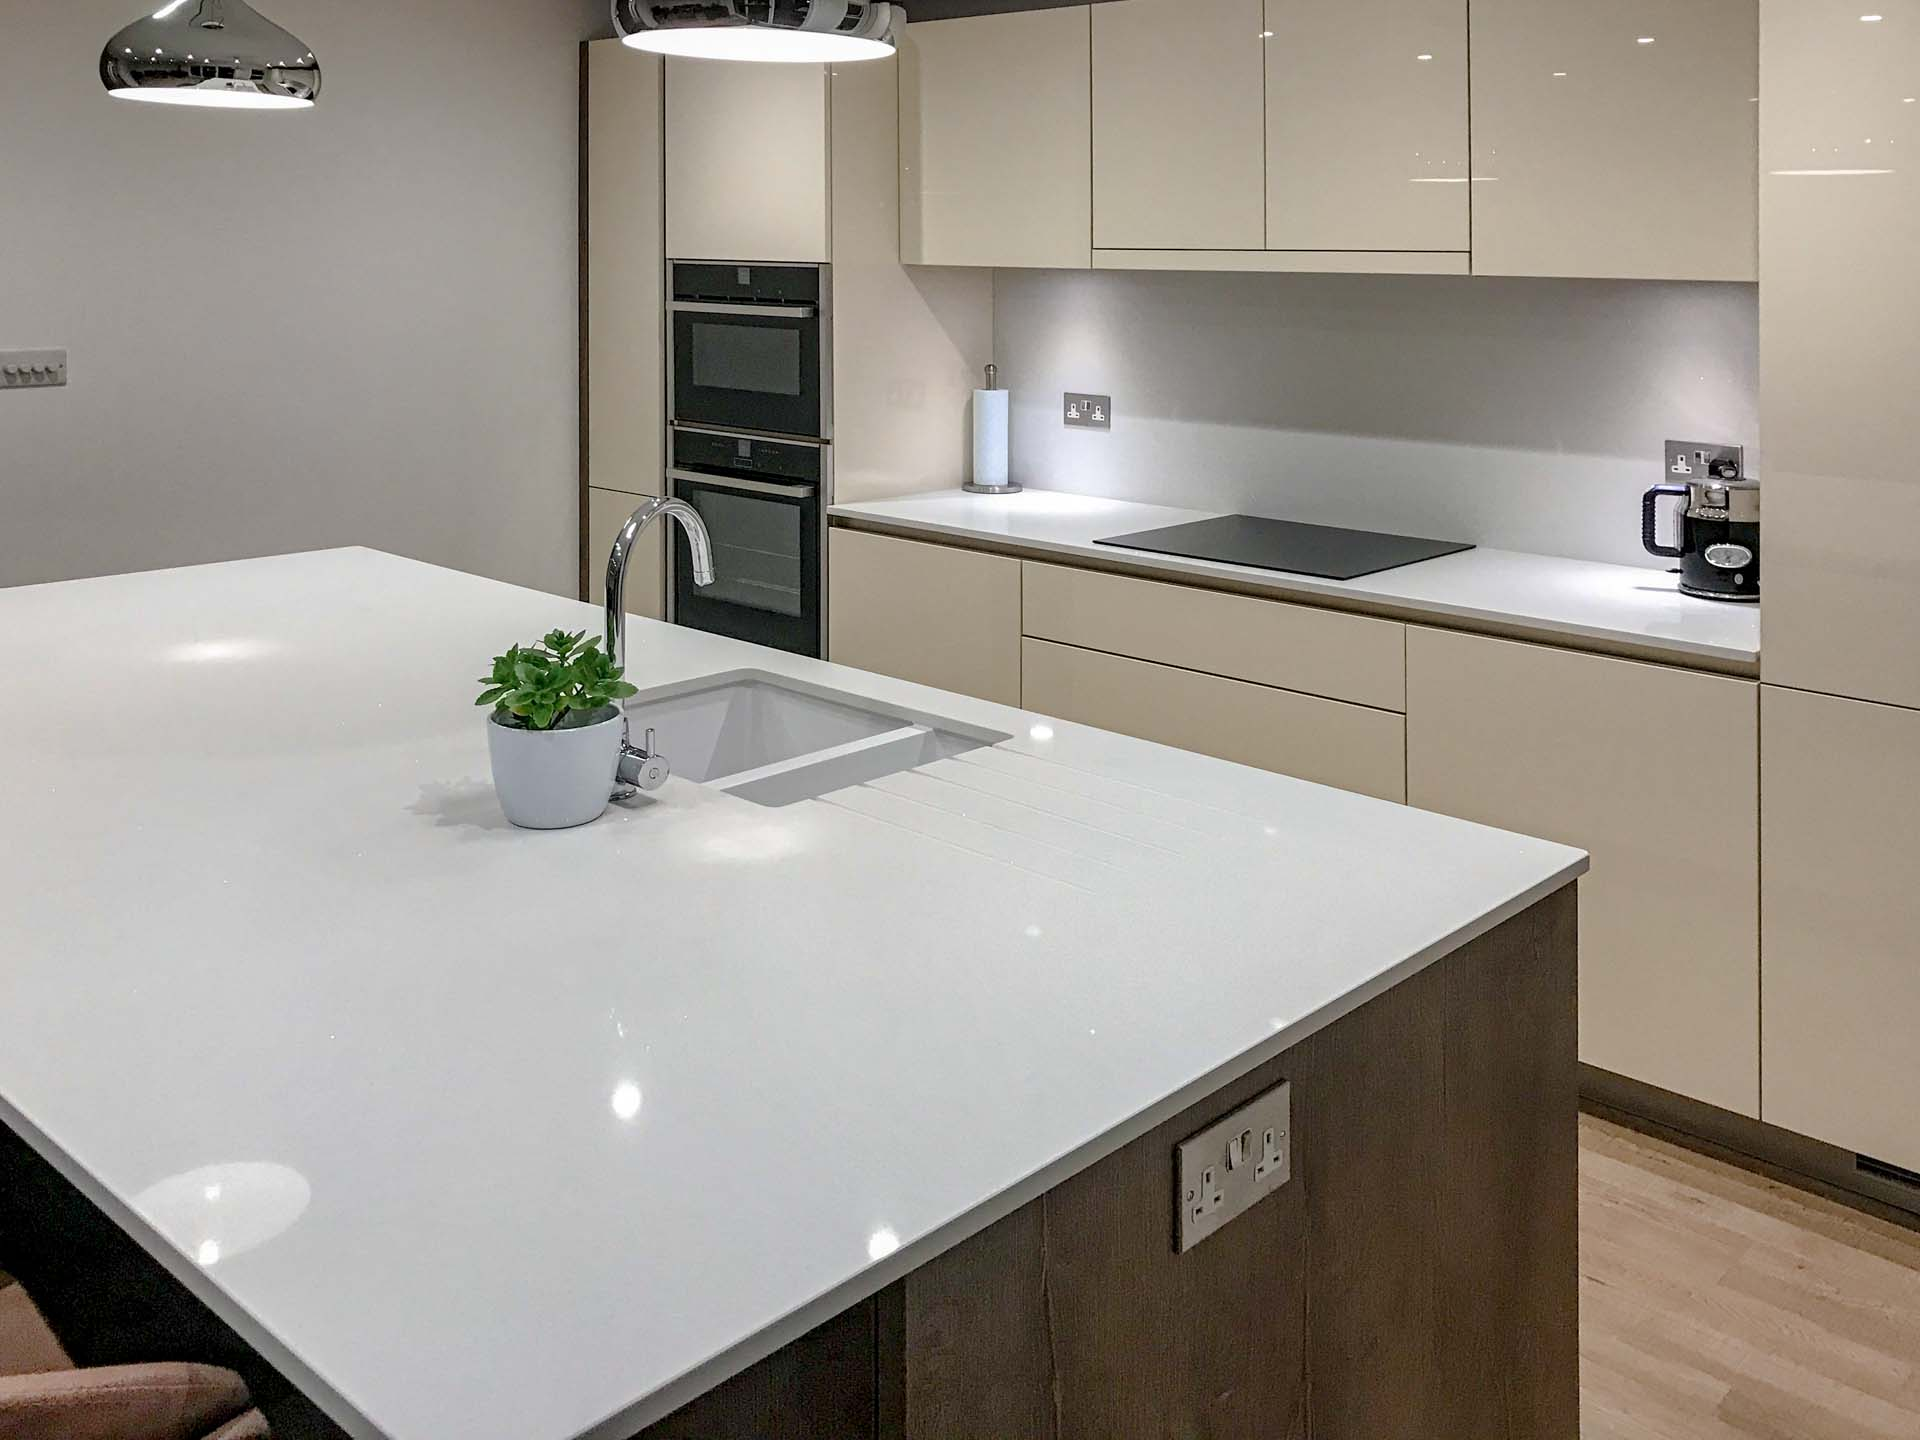 Classic Quartz Ice Branco Ice Branco kitchen supplied by ballerina kitchensa